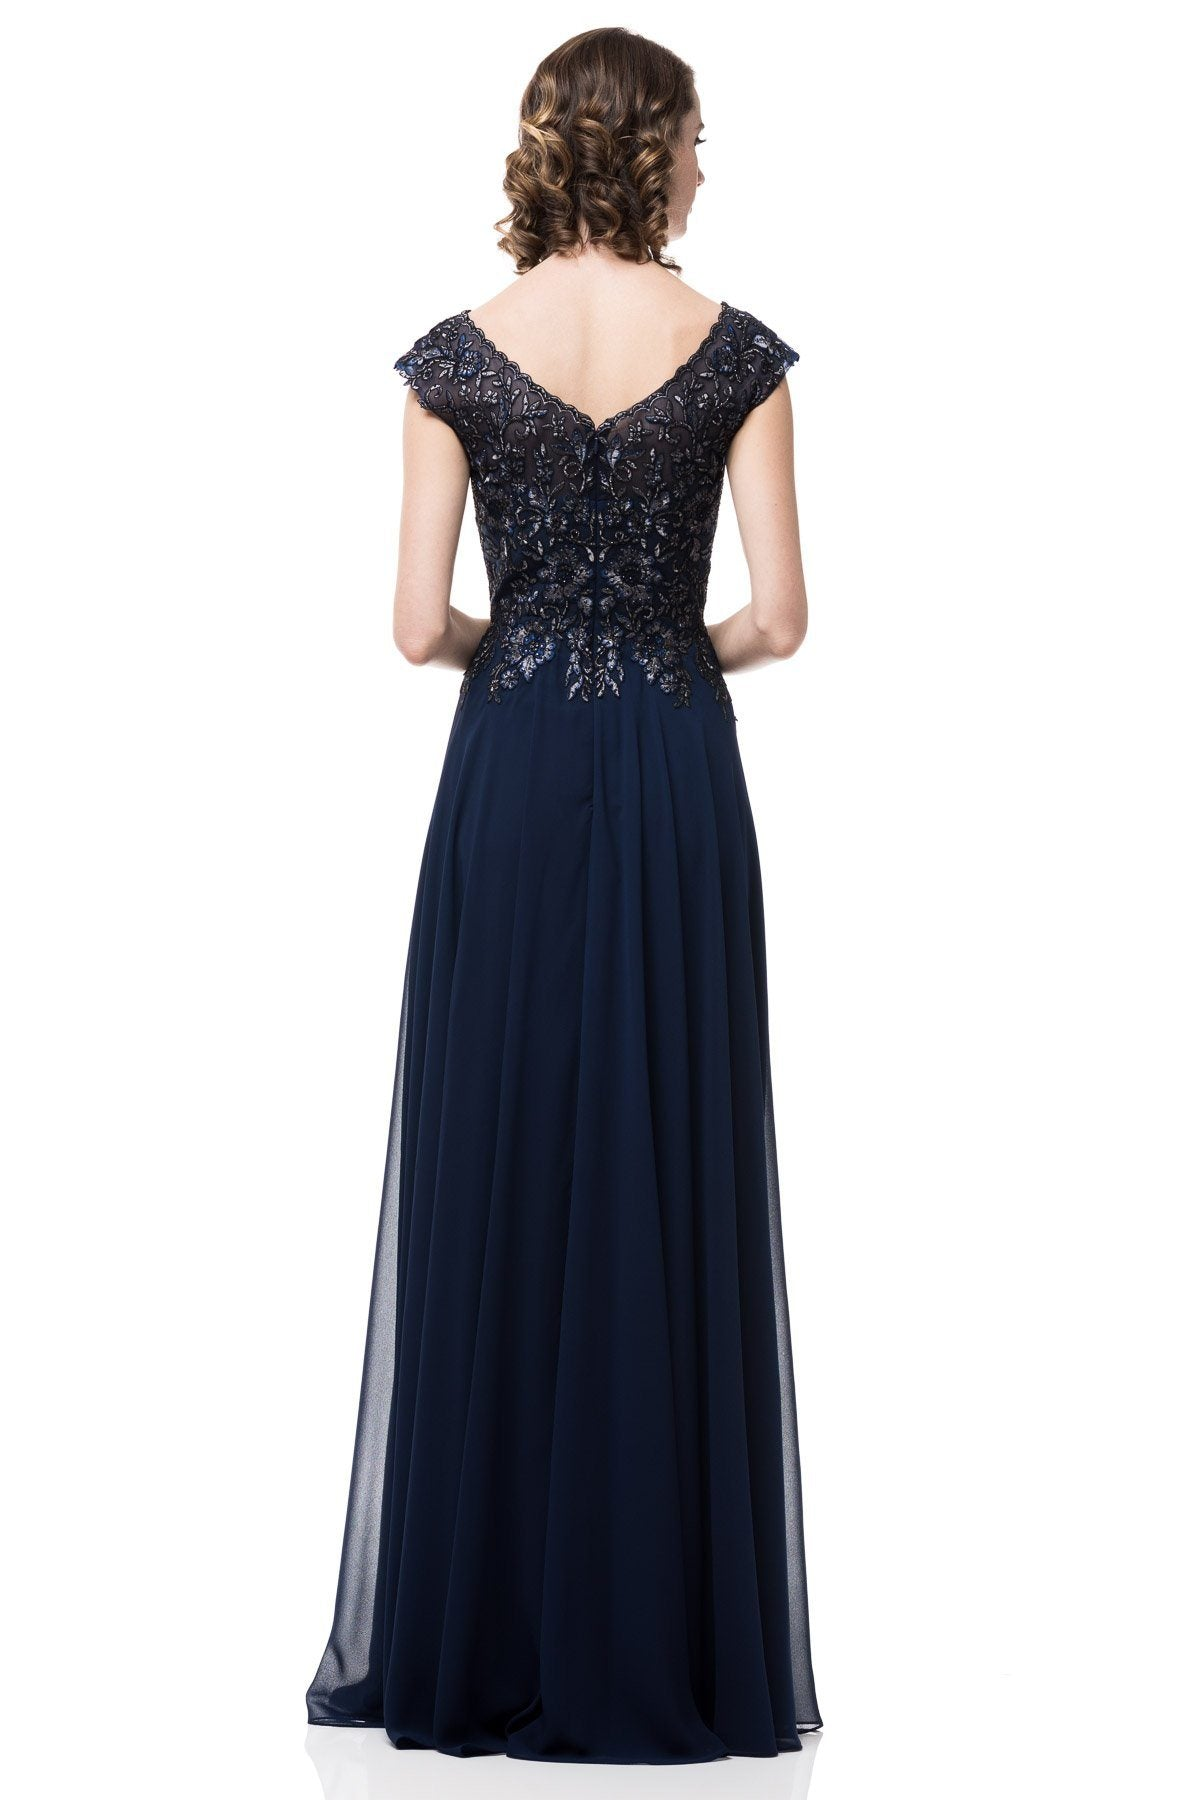 7df1ebde862 ... Plus size navy evening gown  PS2456-Simply Fab Dress